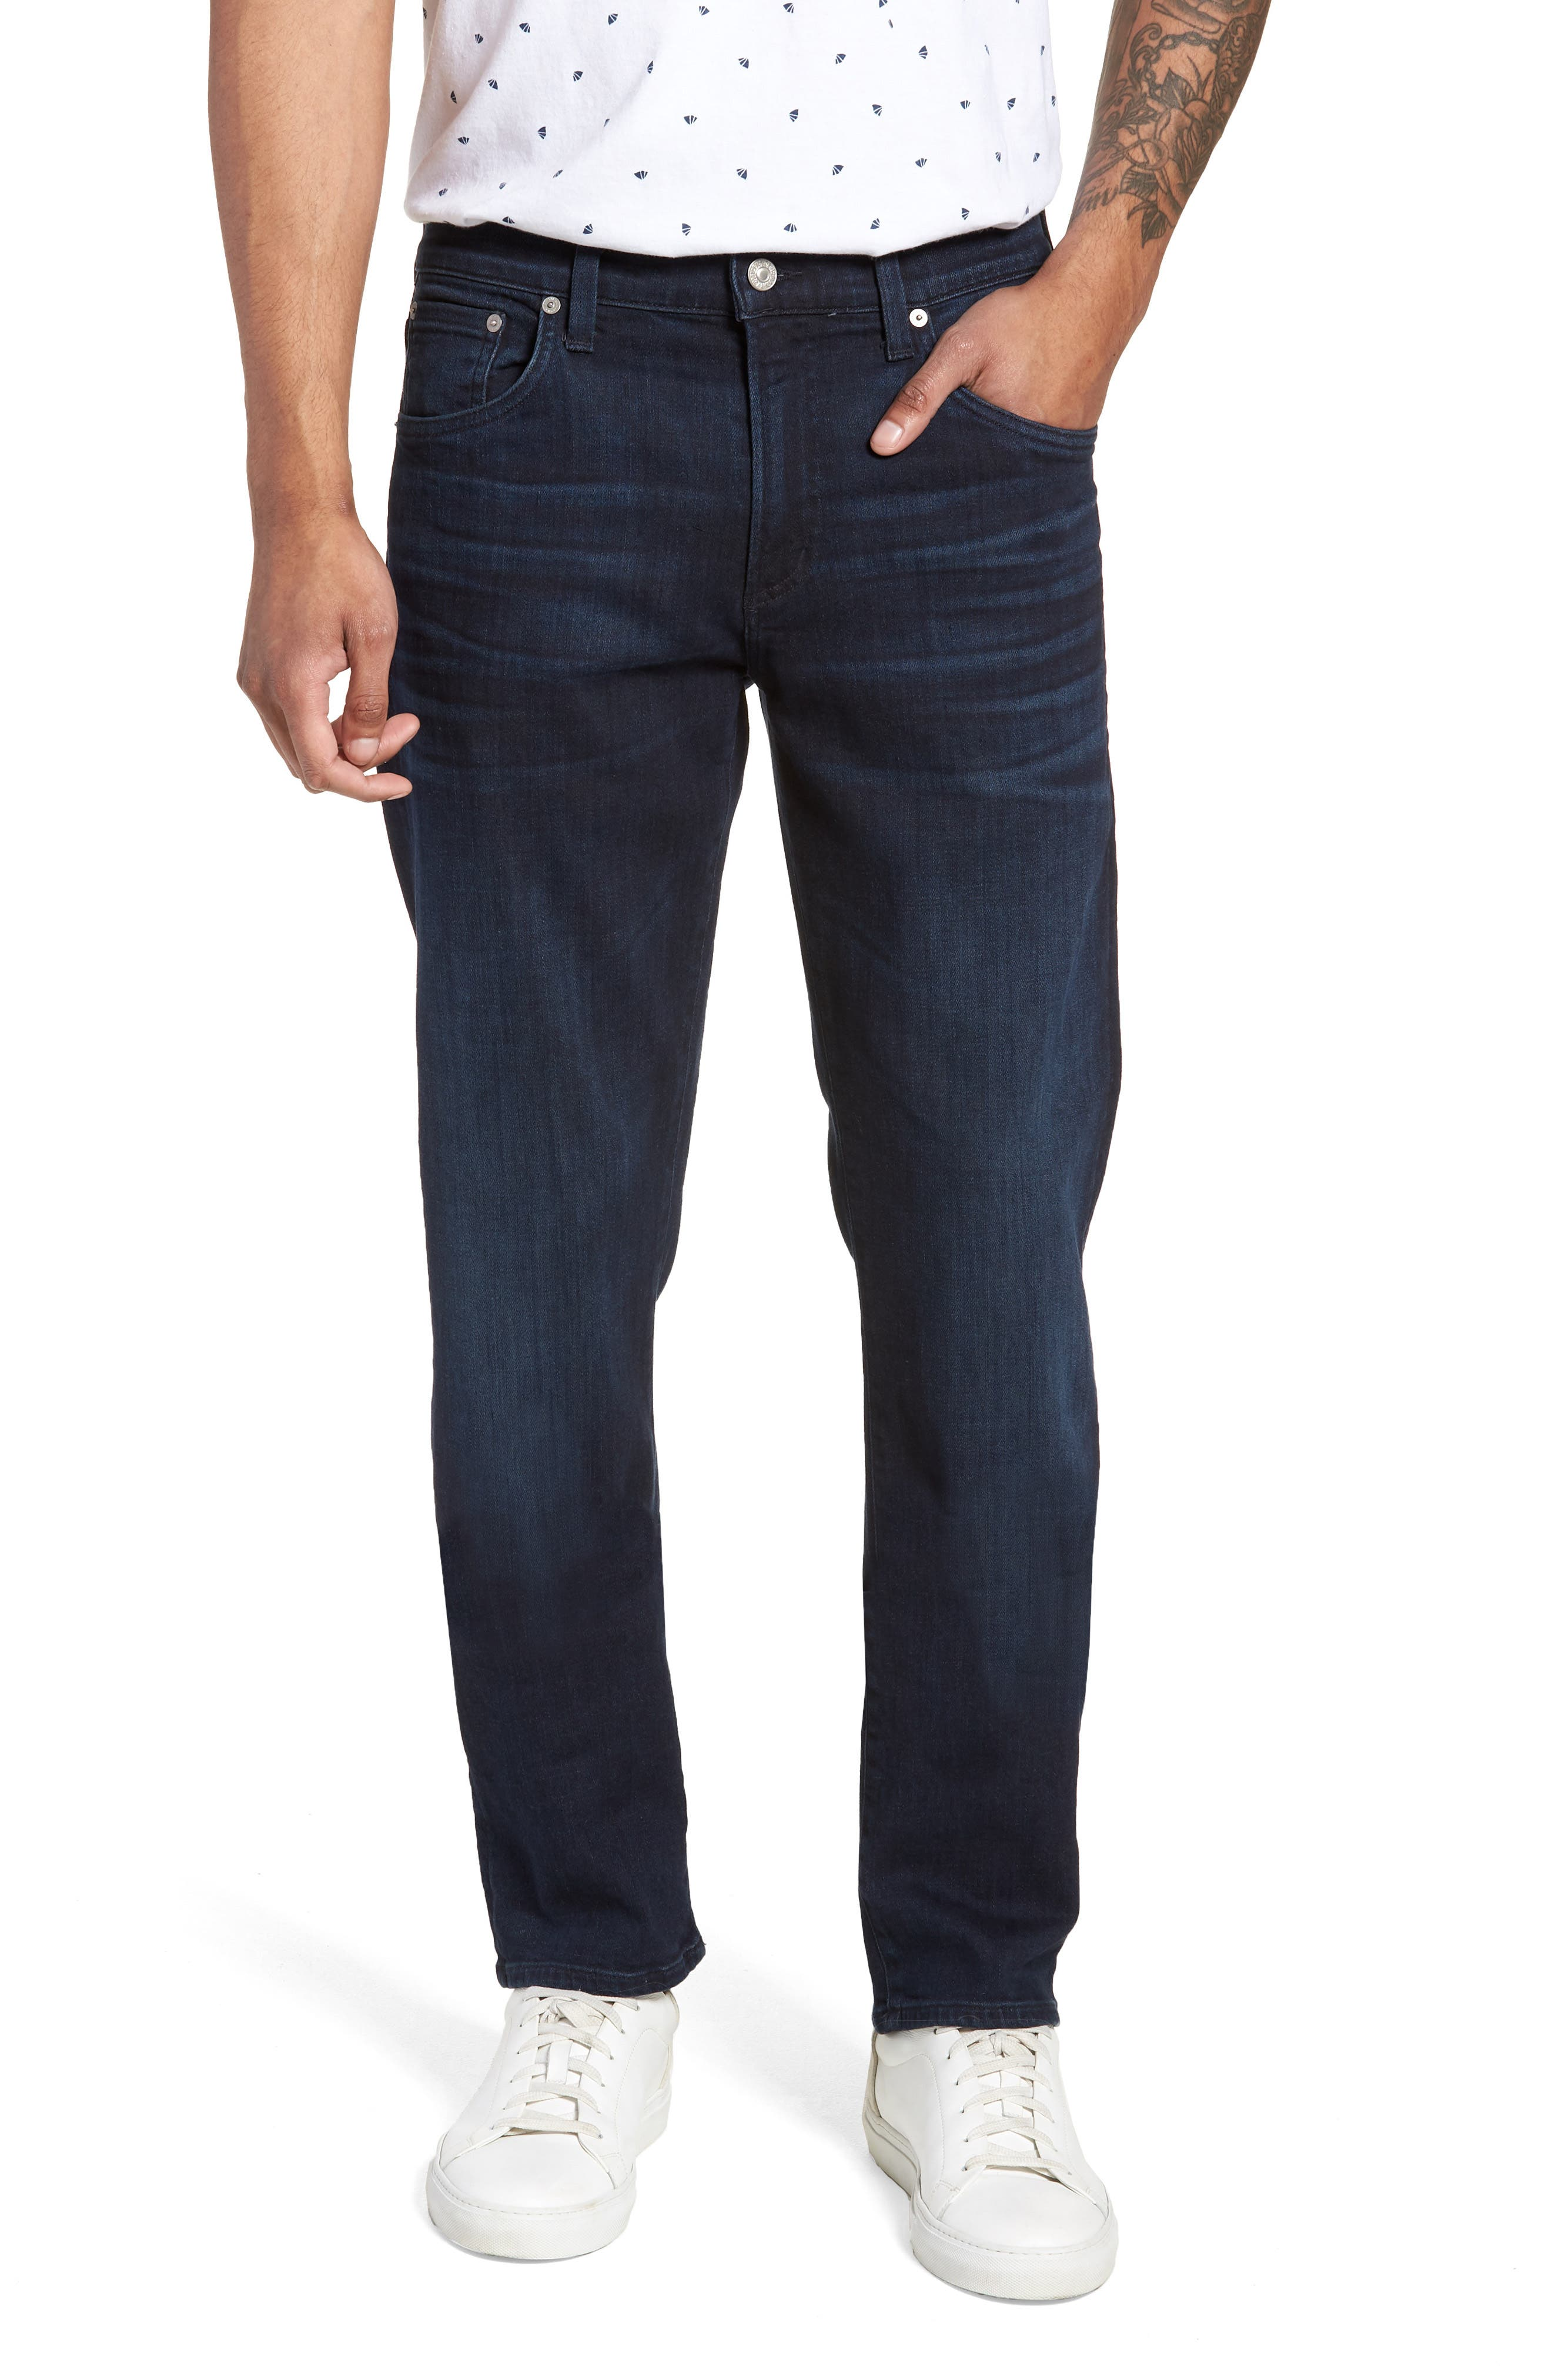 Gage Slim Straight Leg Jeans,                         Main,                         color, GEARY